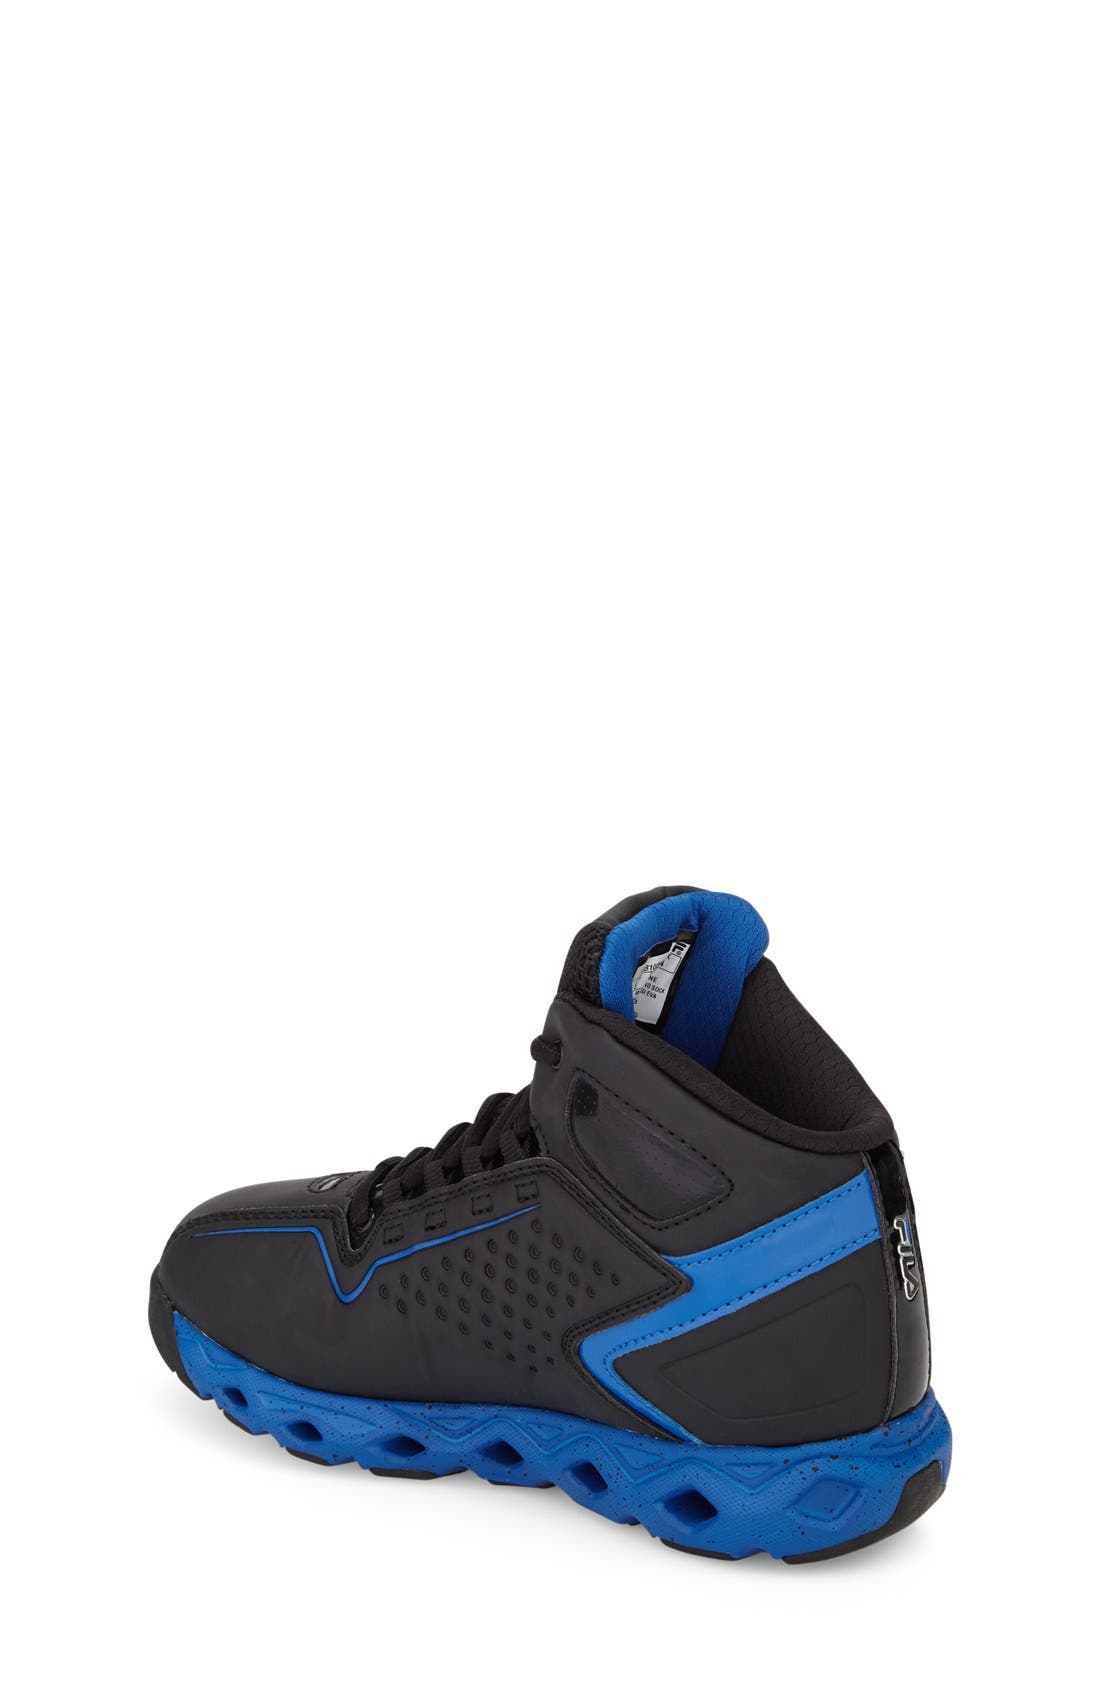 Big Bang High Top Sneaker,                             Alternate thumbnail 2, color,                             Black/ Prince Blue